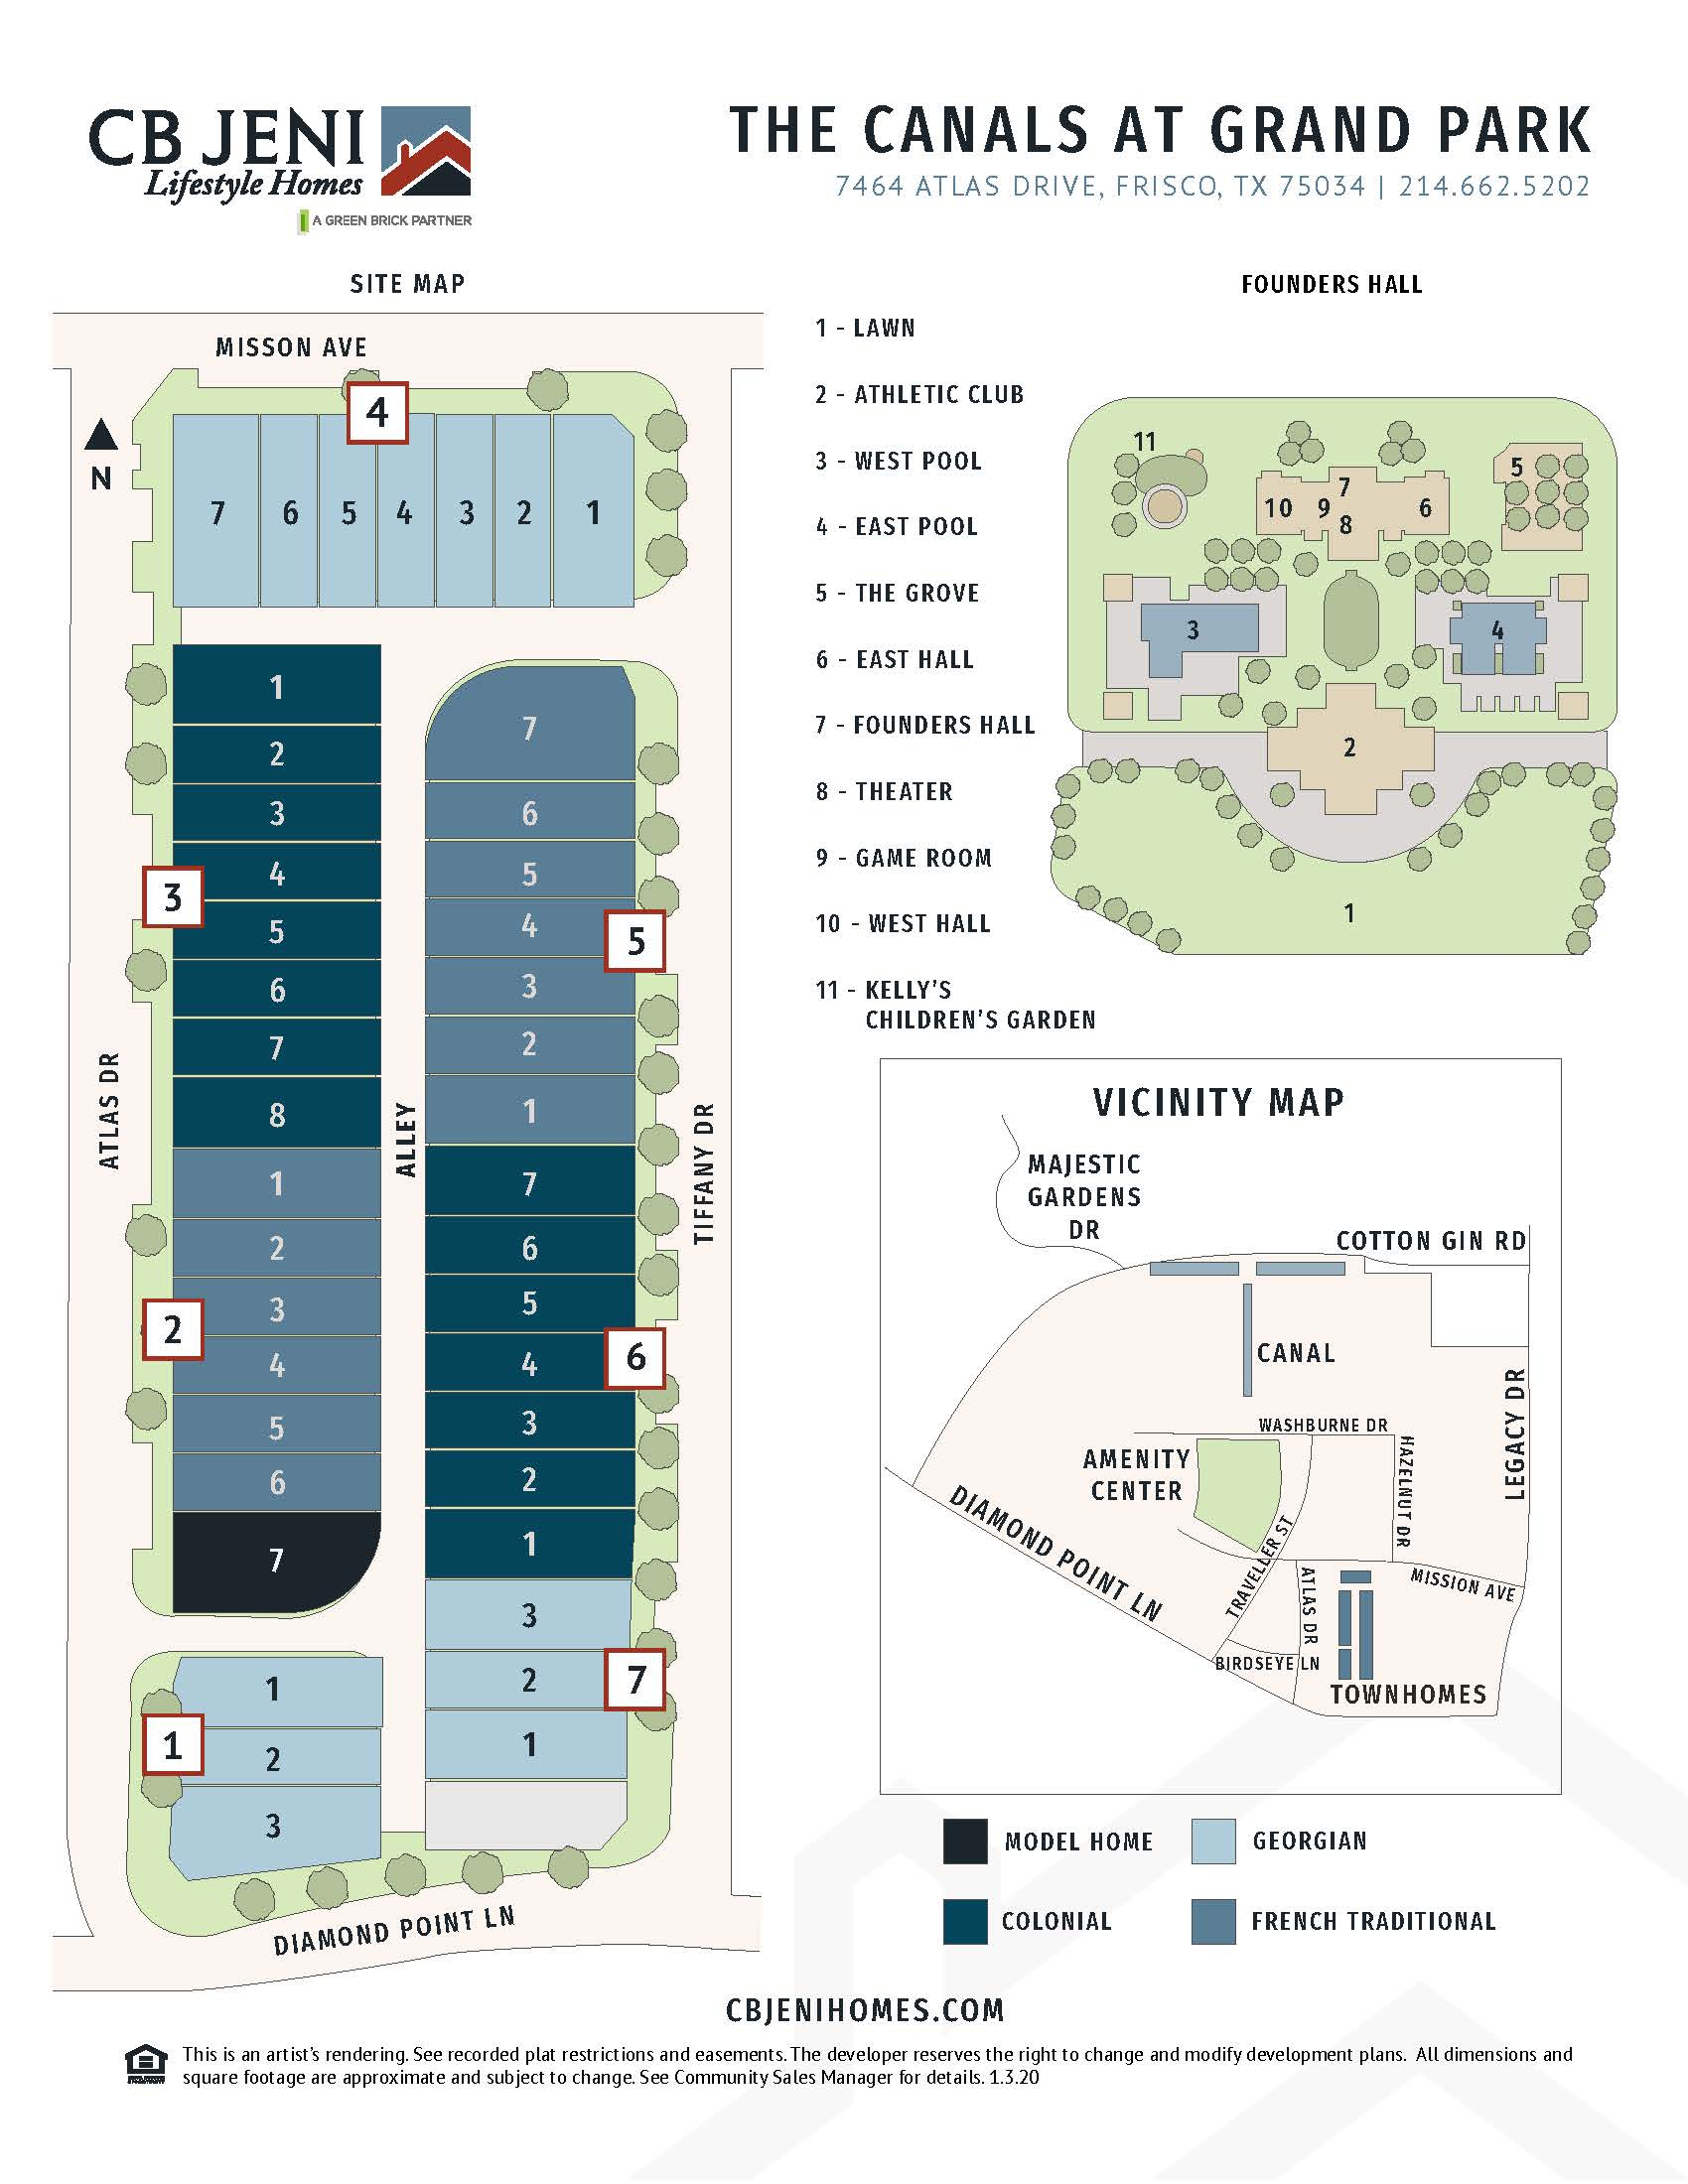 The Canals at Grand Park Site Map